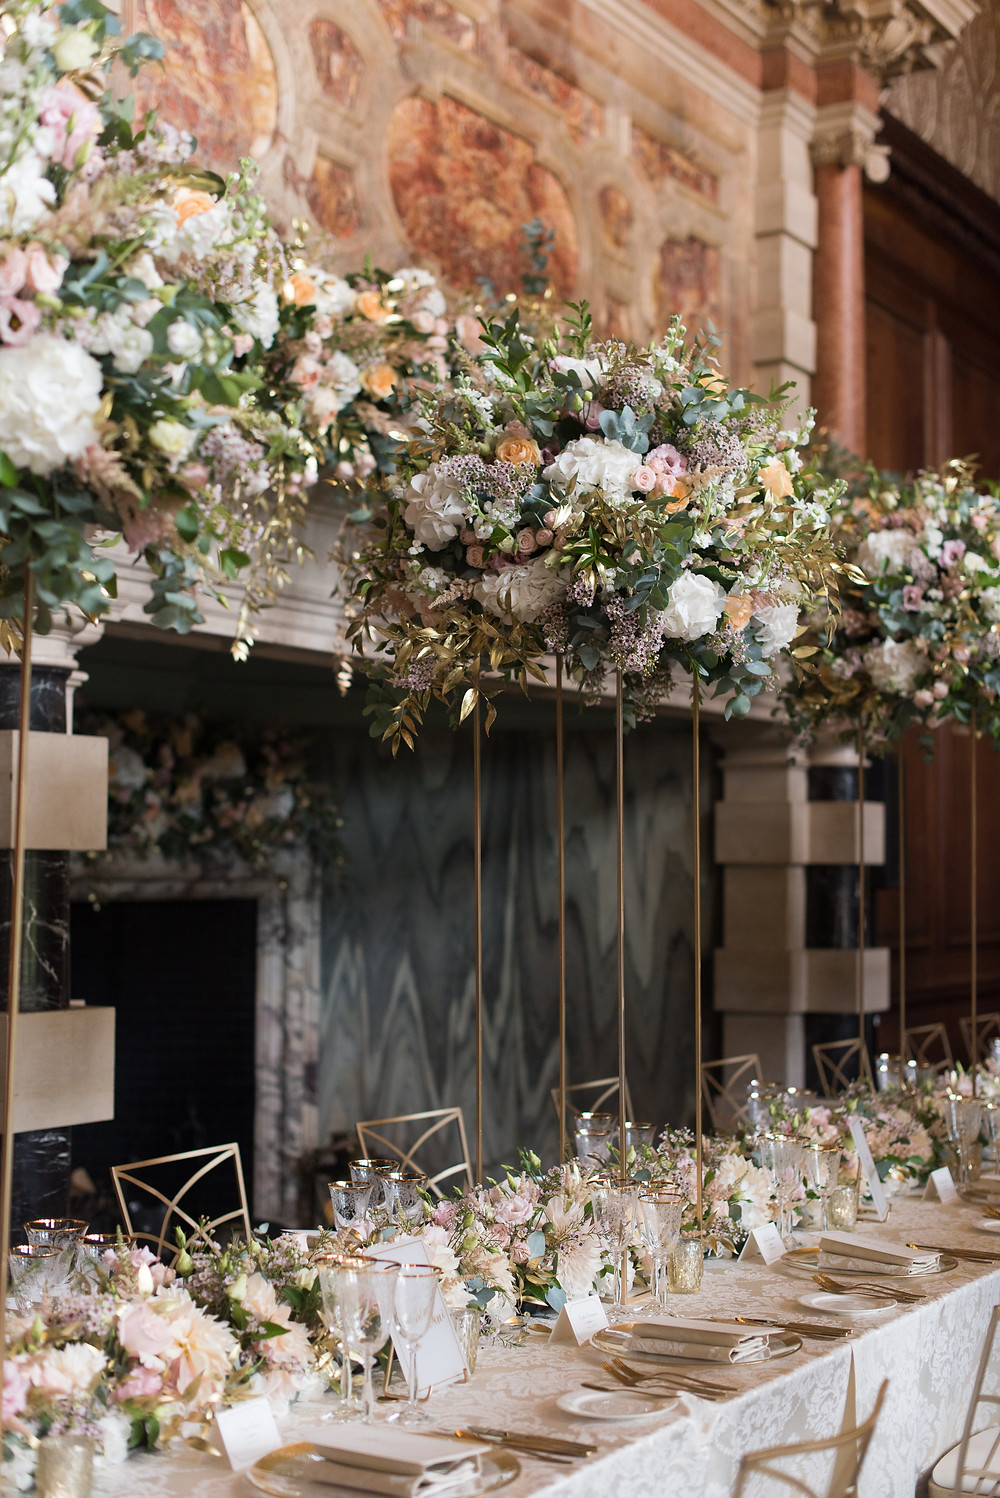 Overhead Canopy of luxury wedding flowers